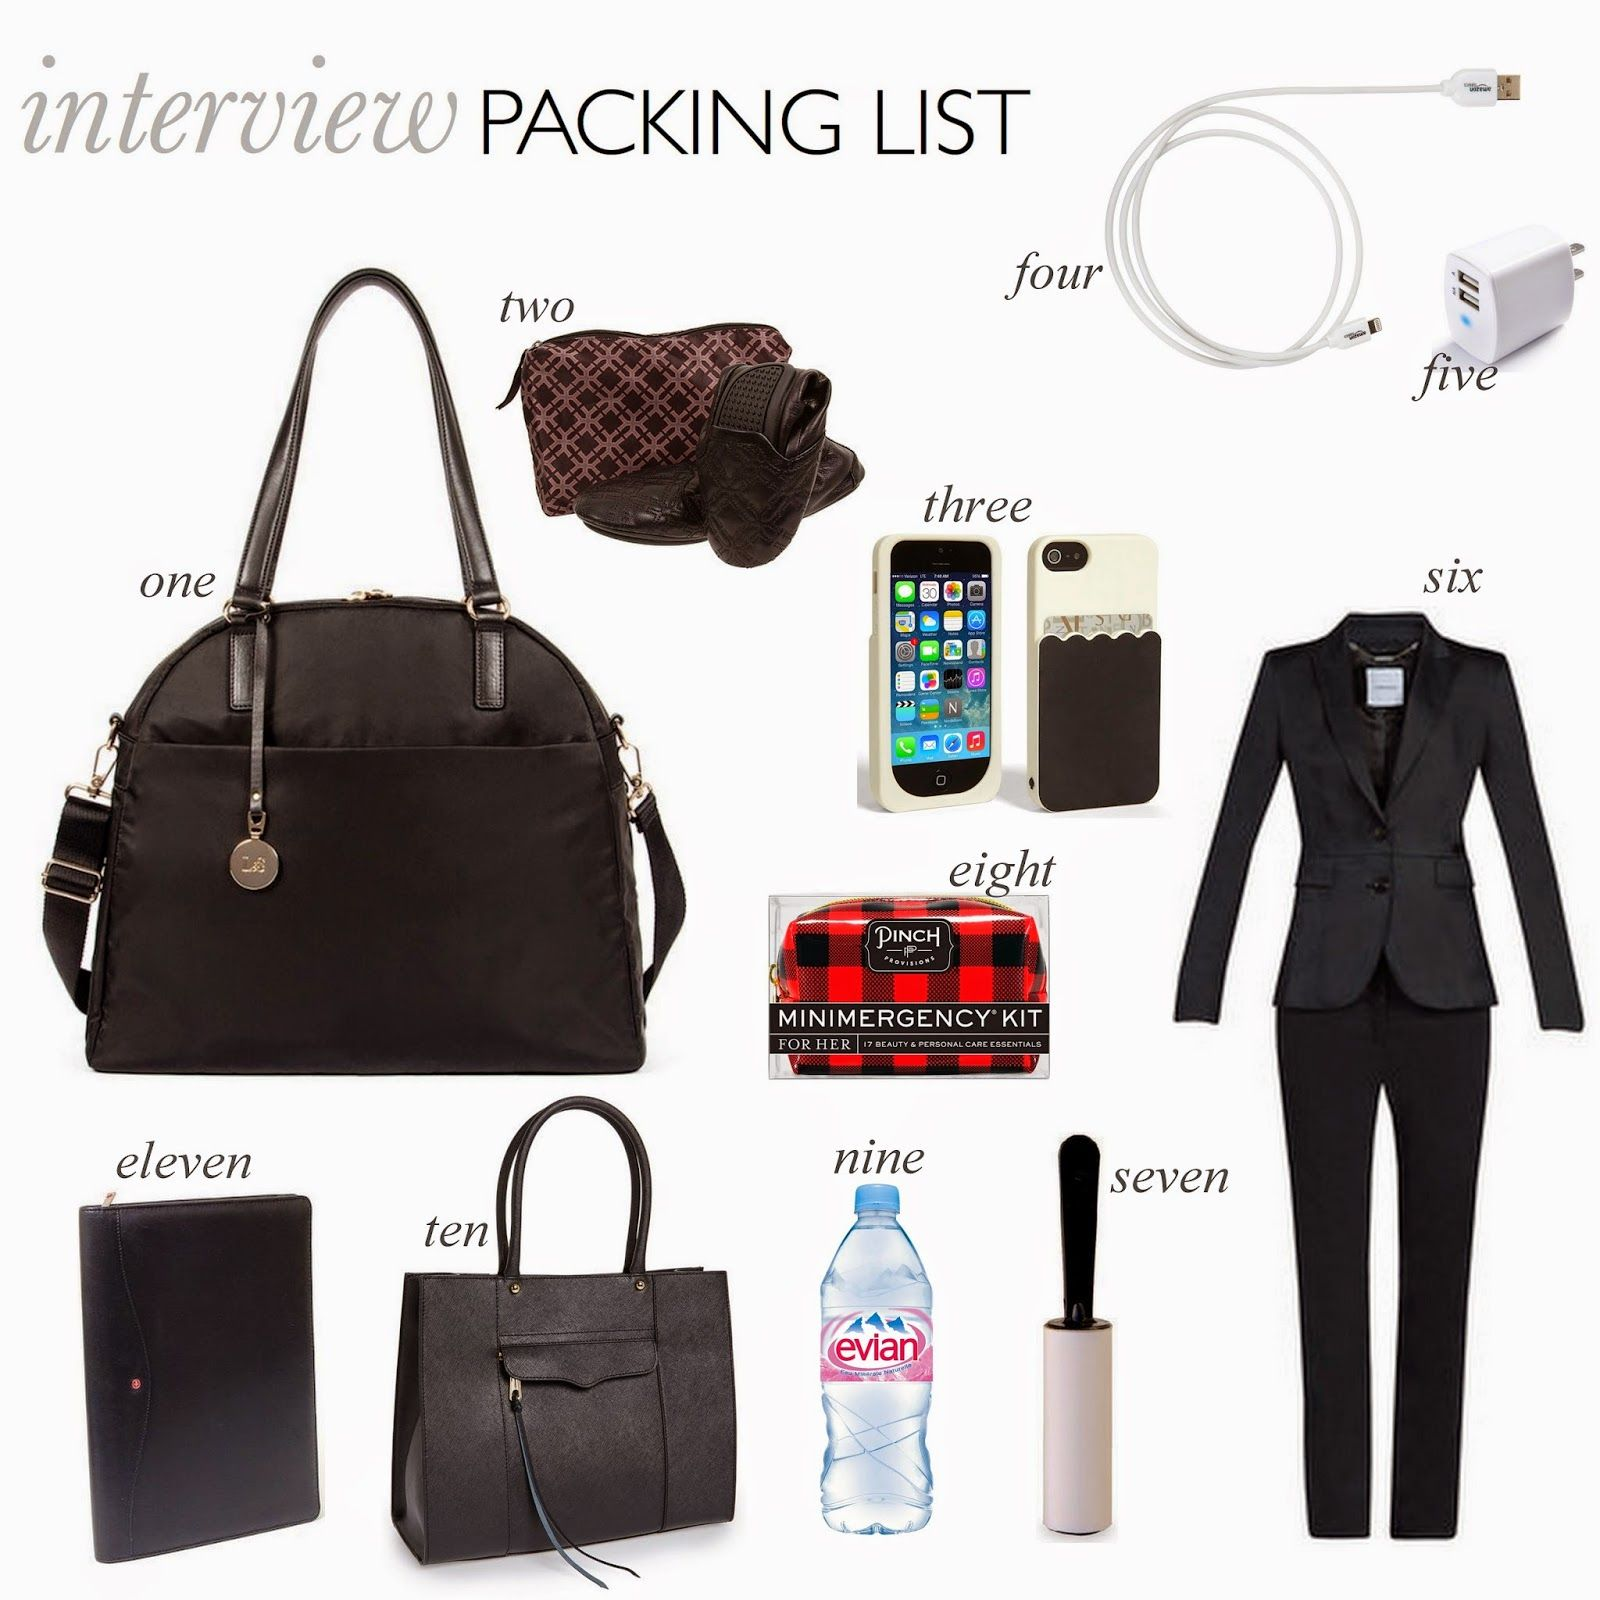 A LITTLE BIT OF LACQUER: Interview Packing List | Doctor in